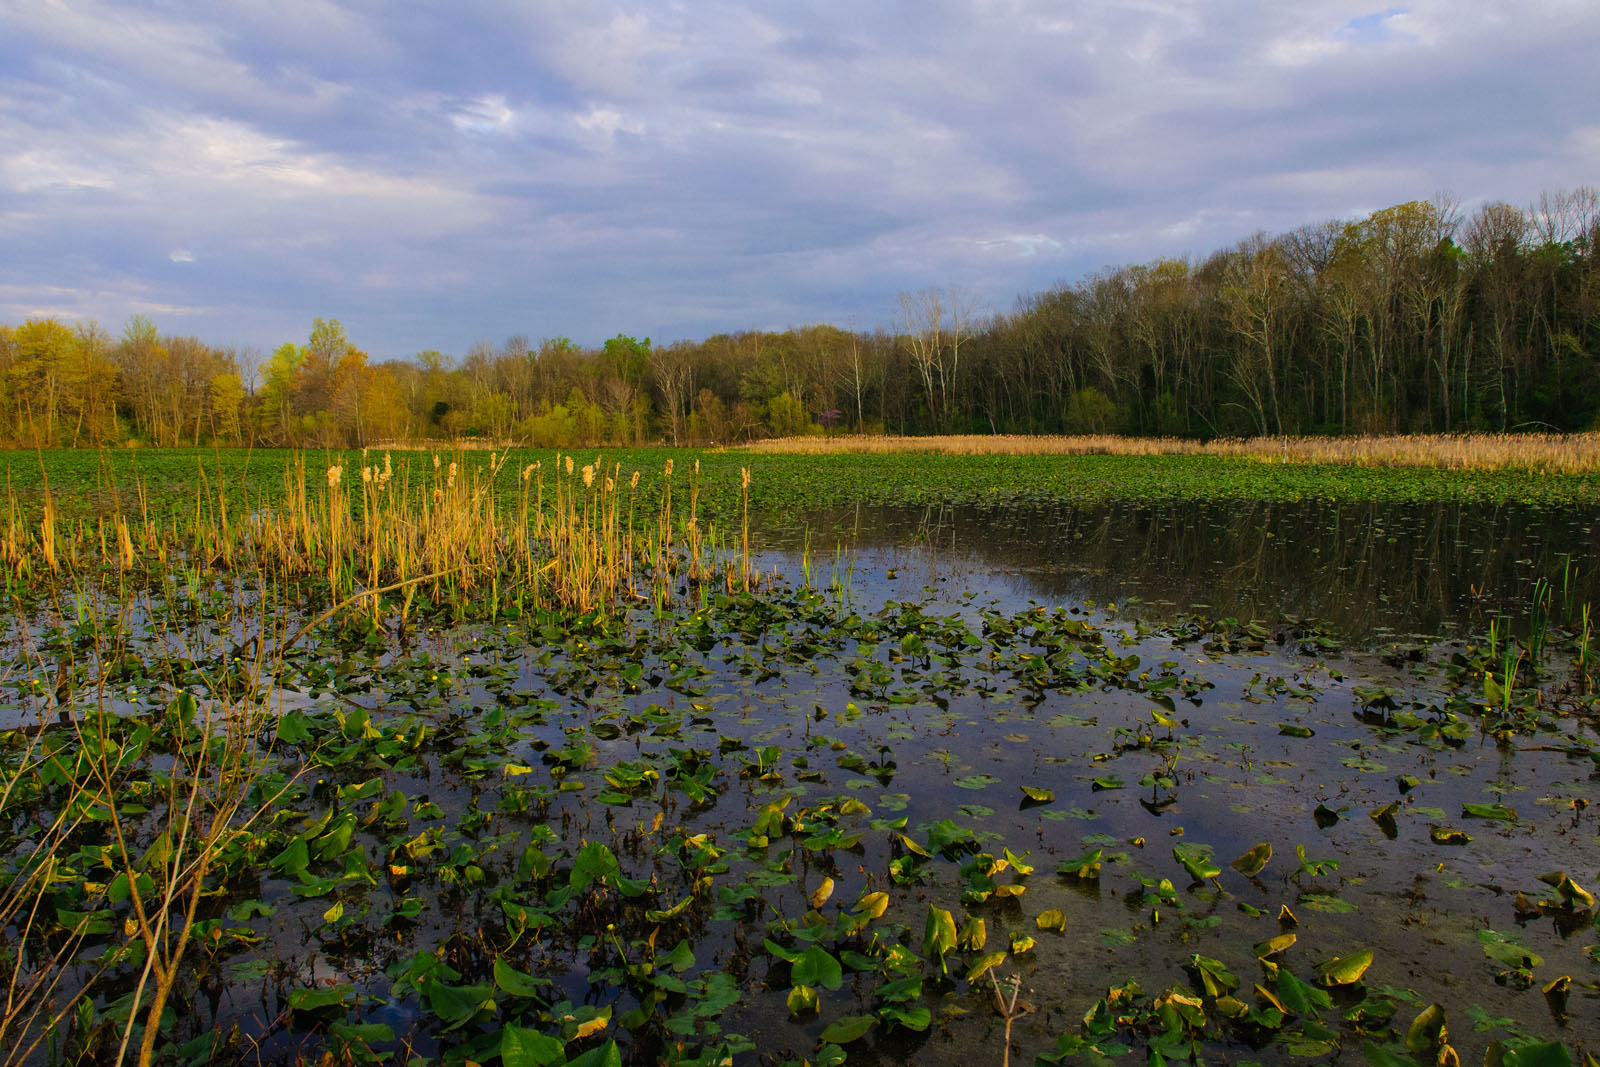 Record-breaking summer rainfall undermines Chesapeake Bay recovery efforts